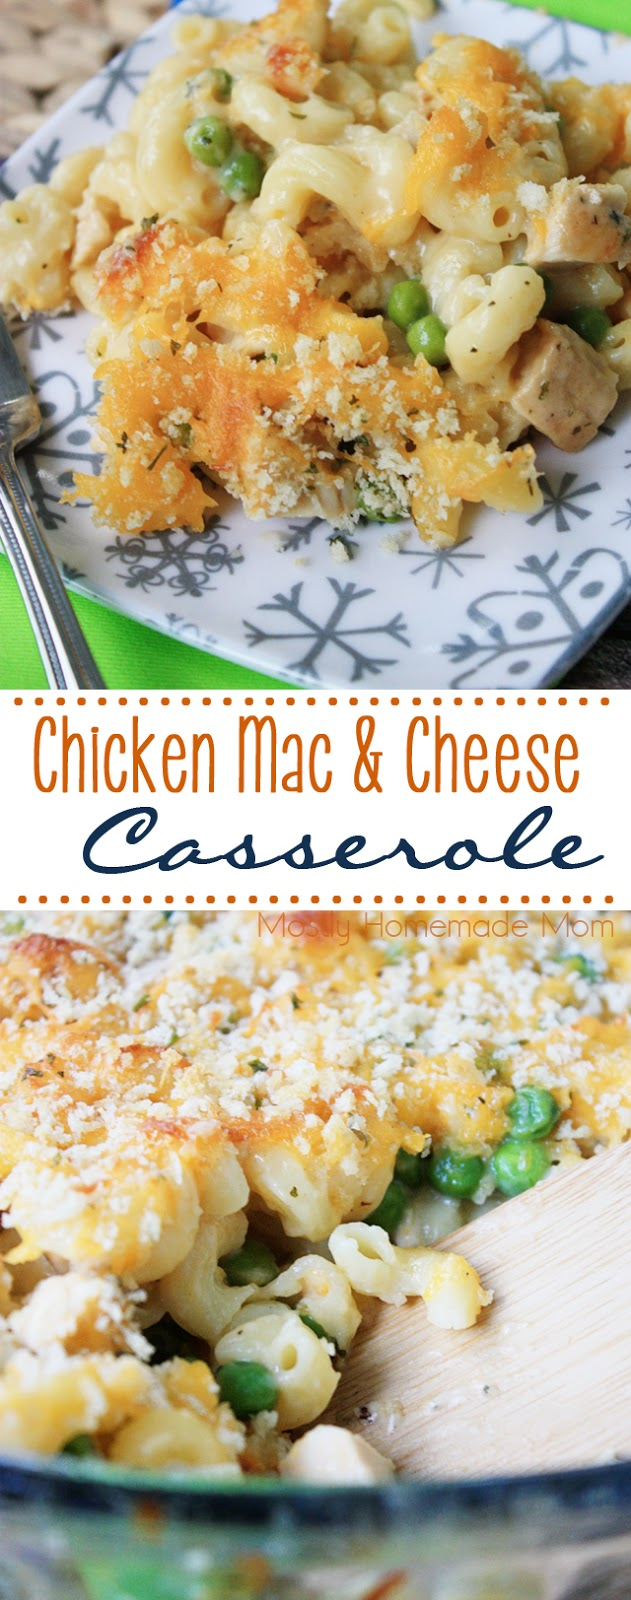 Chicken Macaroni and Cheese Casserole